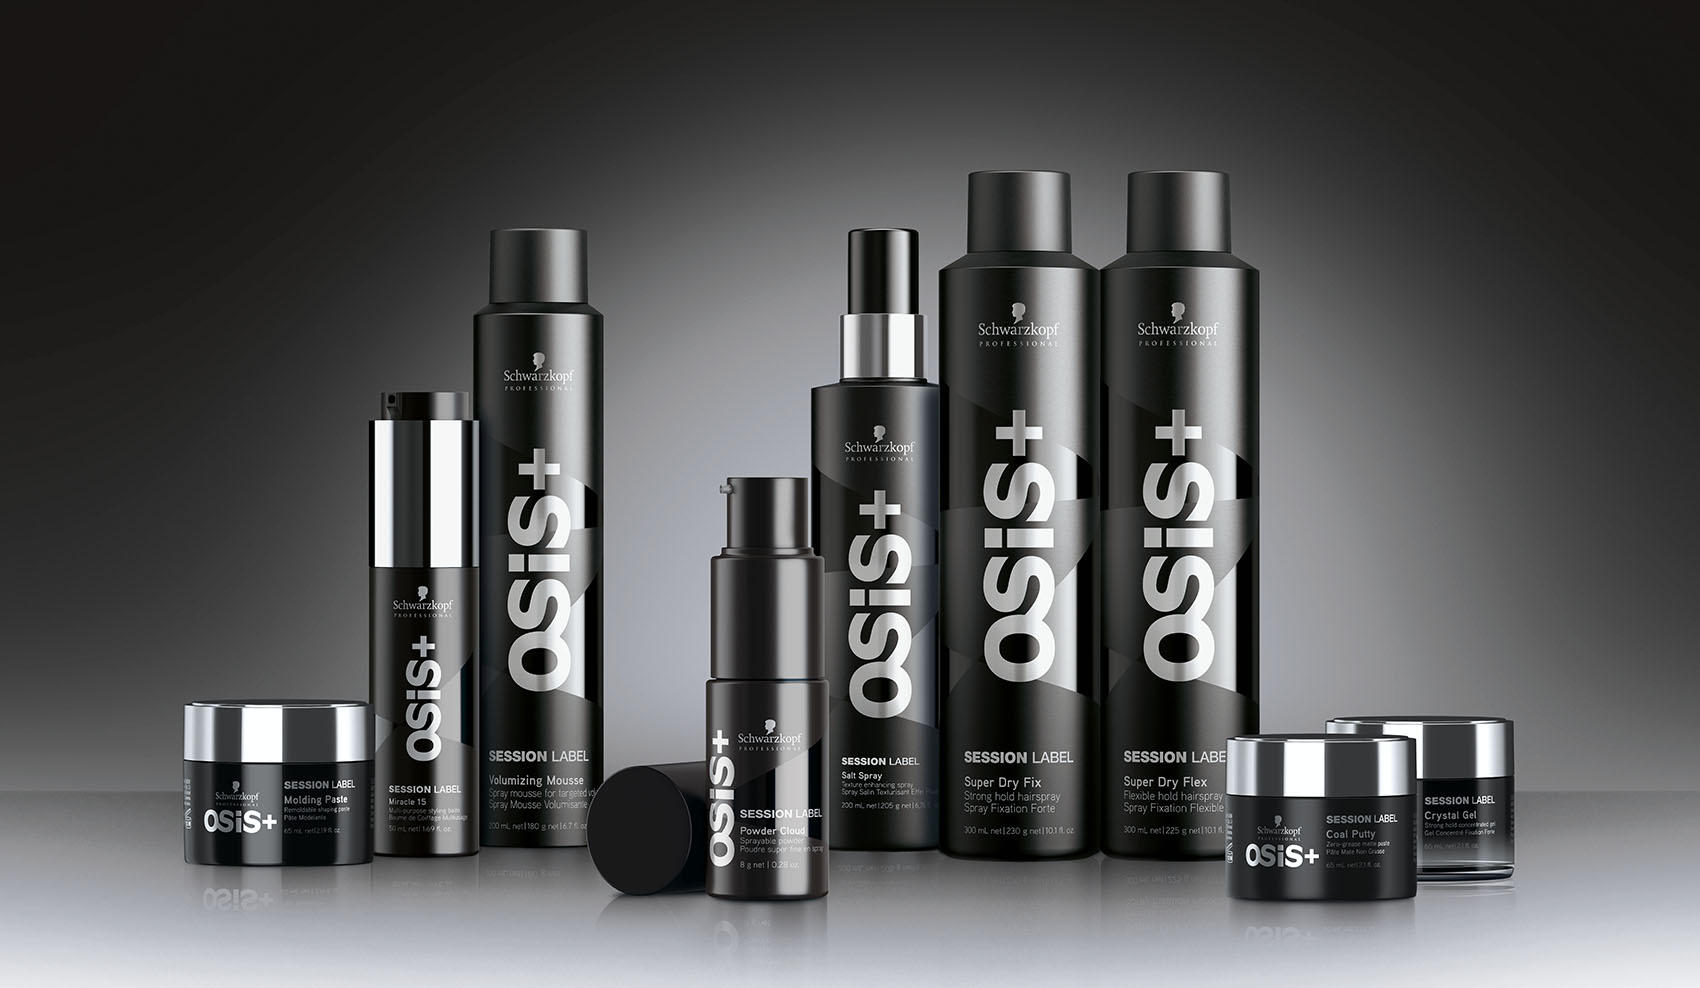 OSIS+ Session Label